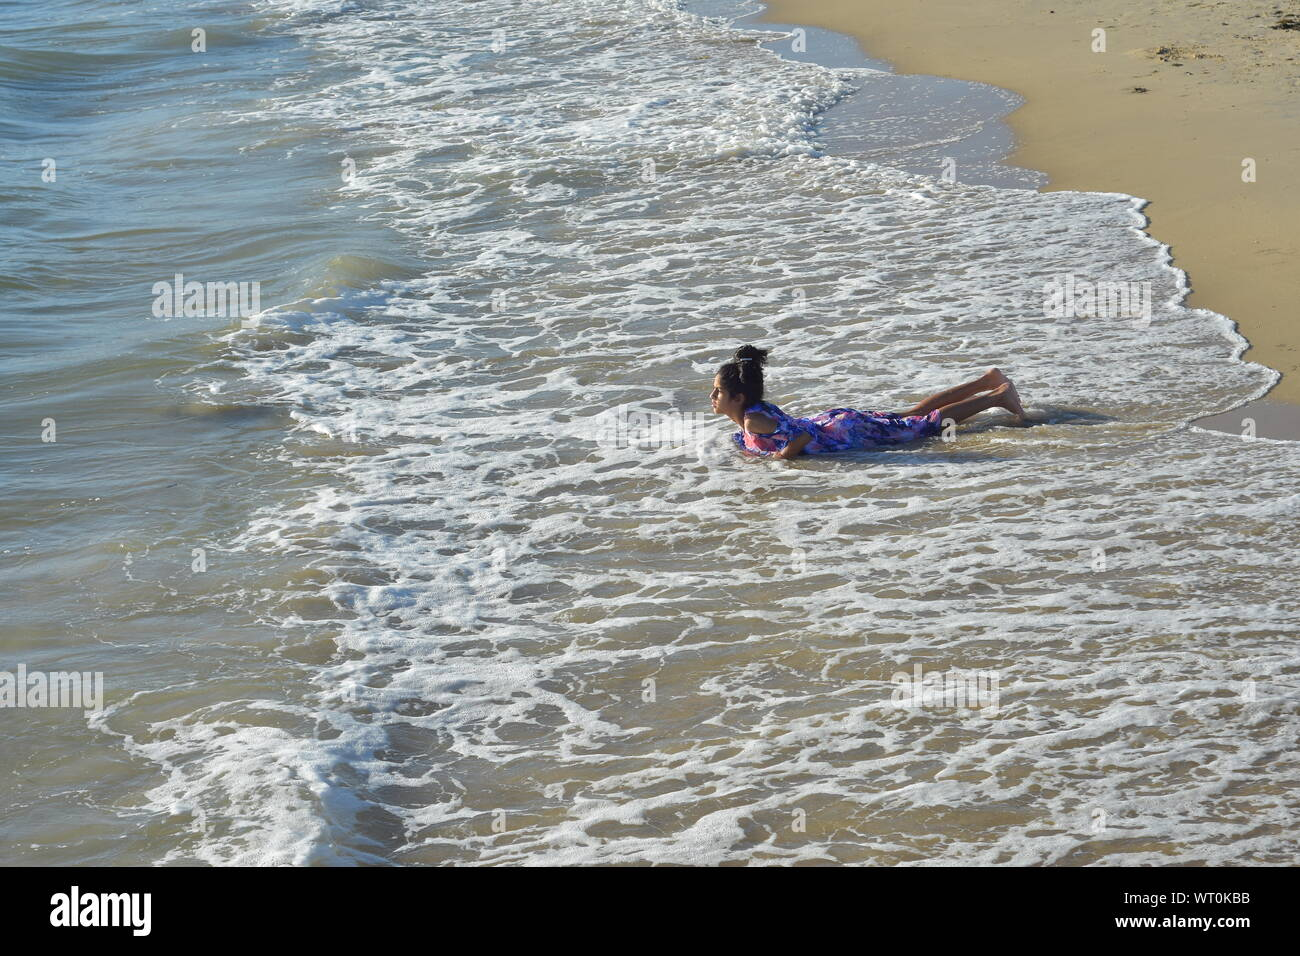 Girl on sandy beach playing in surf waves. Stock Photo